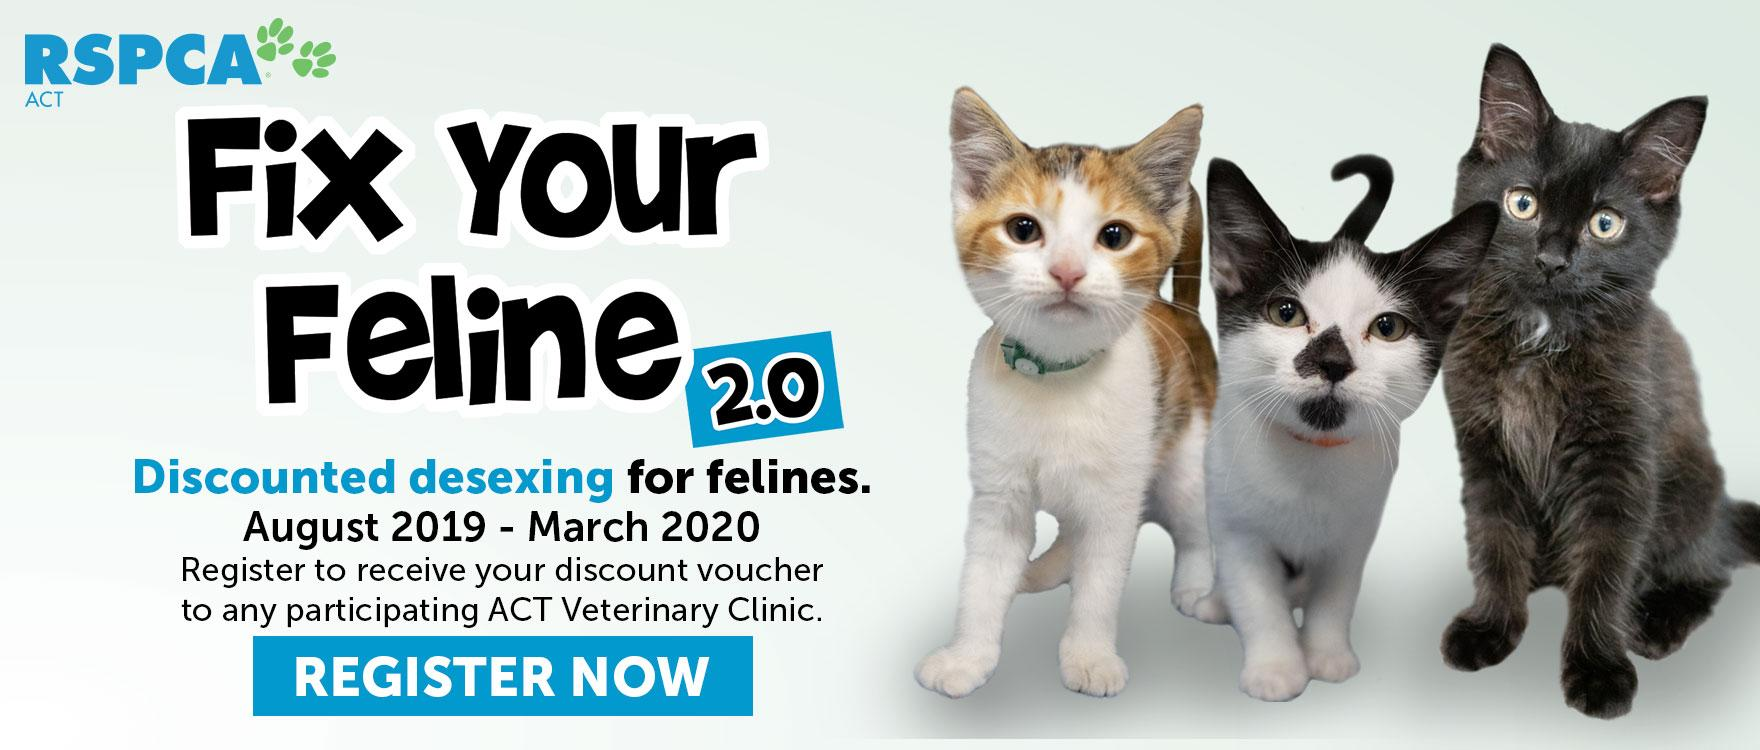 Discounted Feline Desexing with Fix Your Feline 2.0!